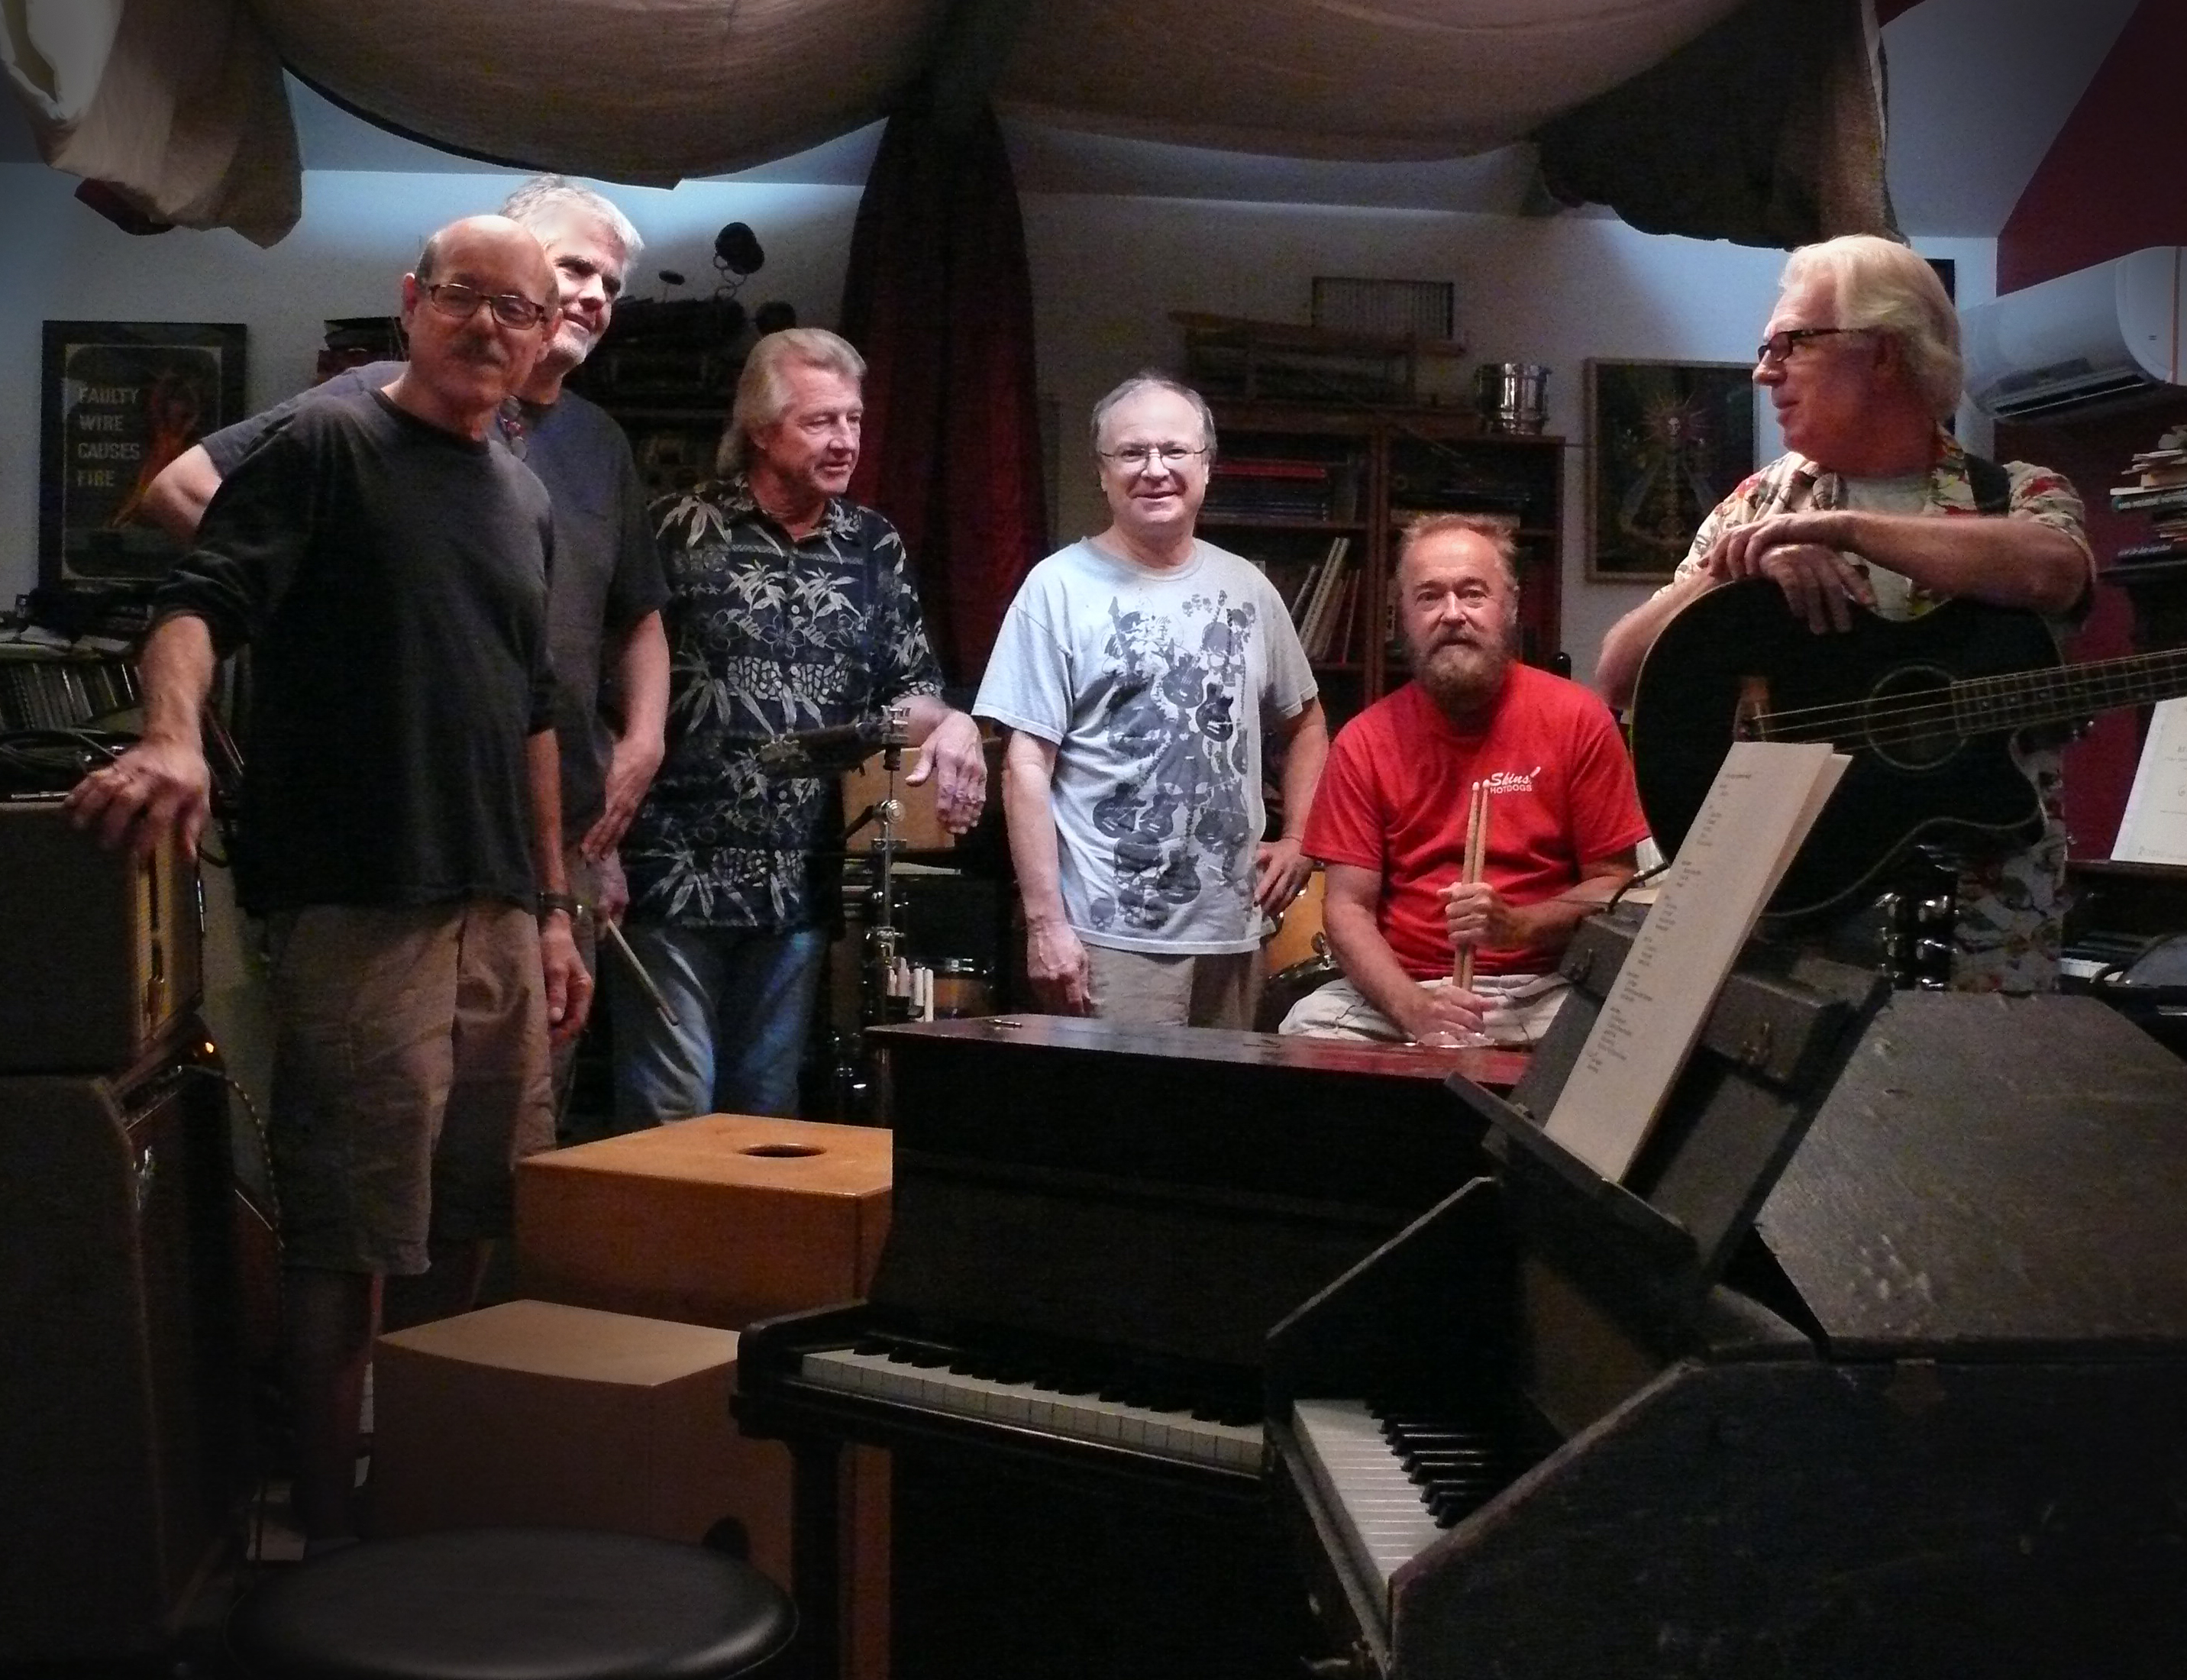 Strawberry Alarm Clock (left to right):  Mark Weitz, Steve Bartek, Randy Seol, Howie Anderson, Gene Gunnels and George Bunnell. (photo credit: John Collinson and Philip Pirolo)